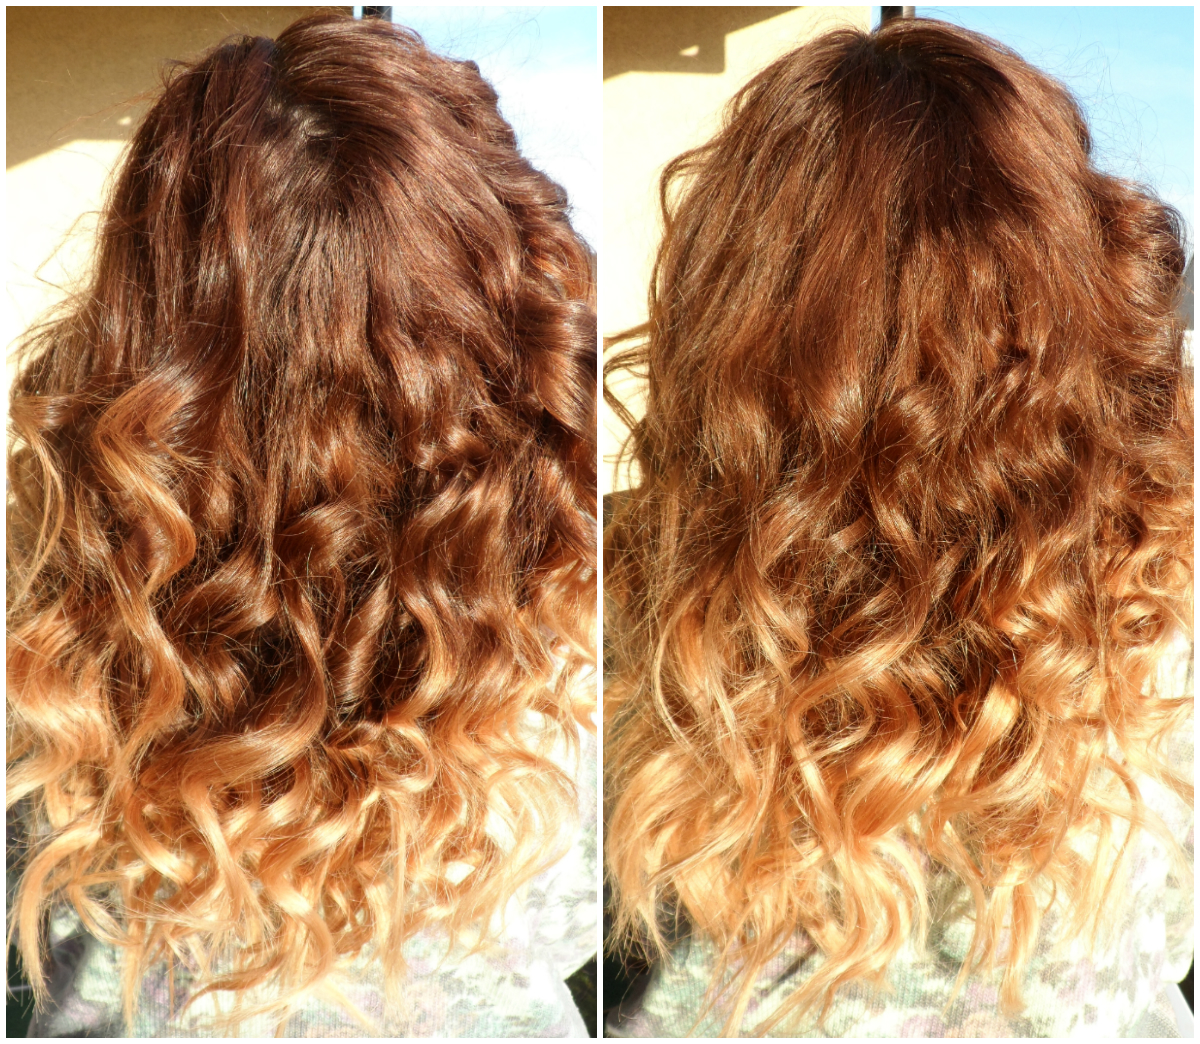 Curls curls curls ombre hair another kind of beauty blog - Ombre braun blond ...